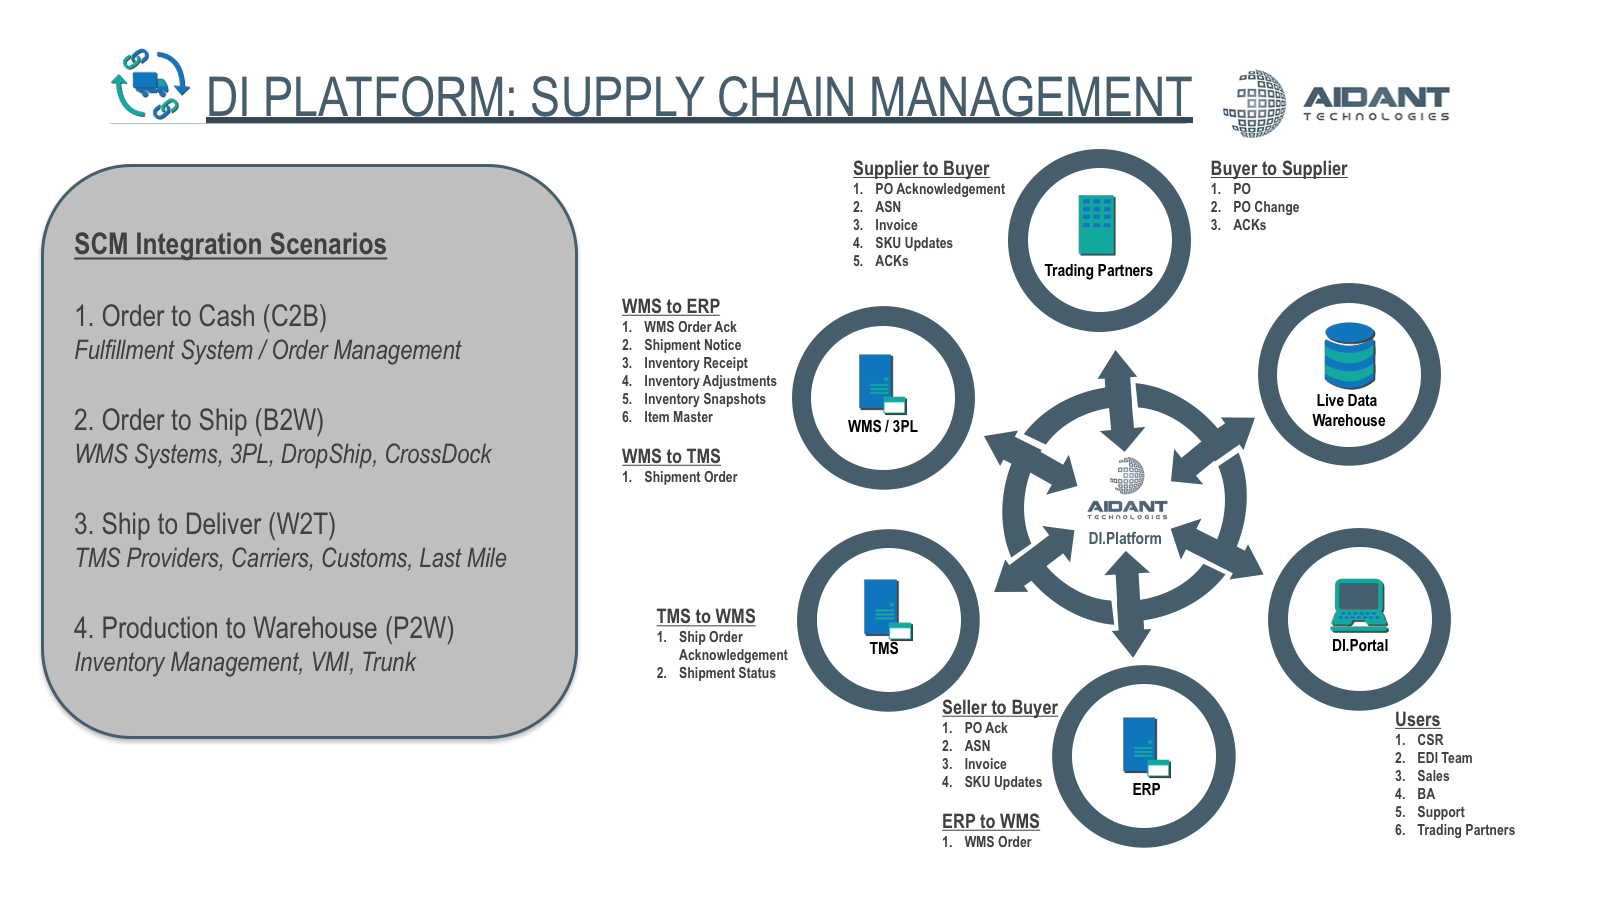 Supply Chain Management: Overview